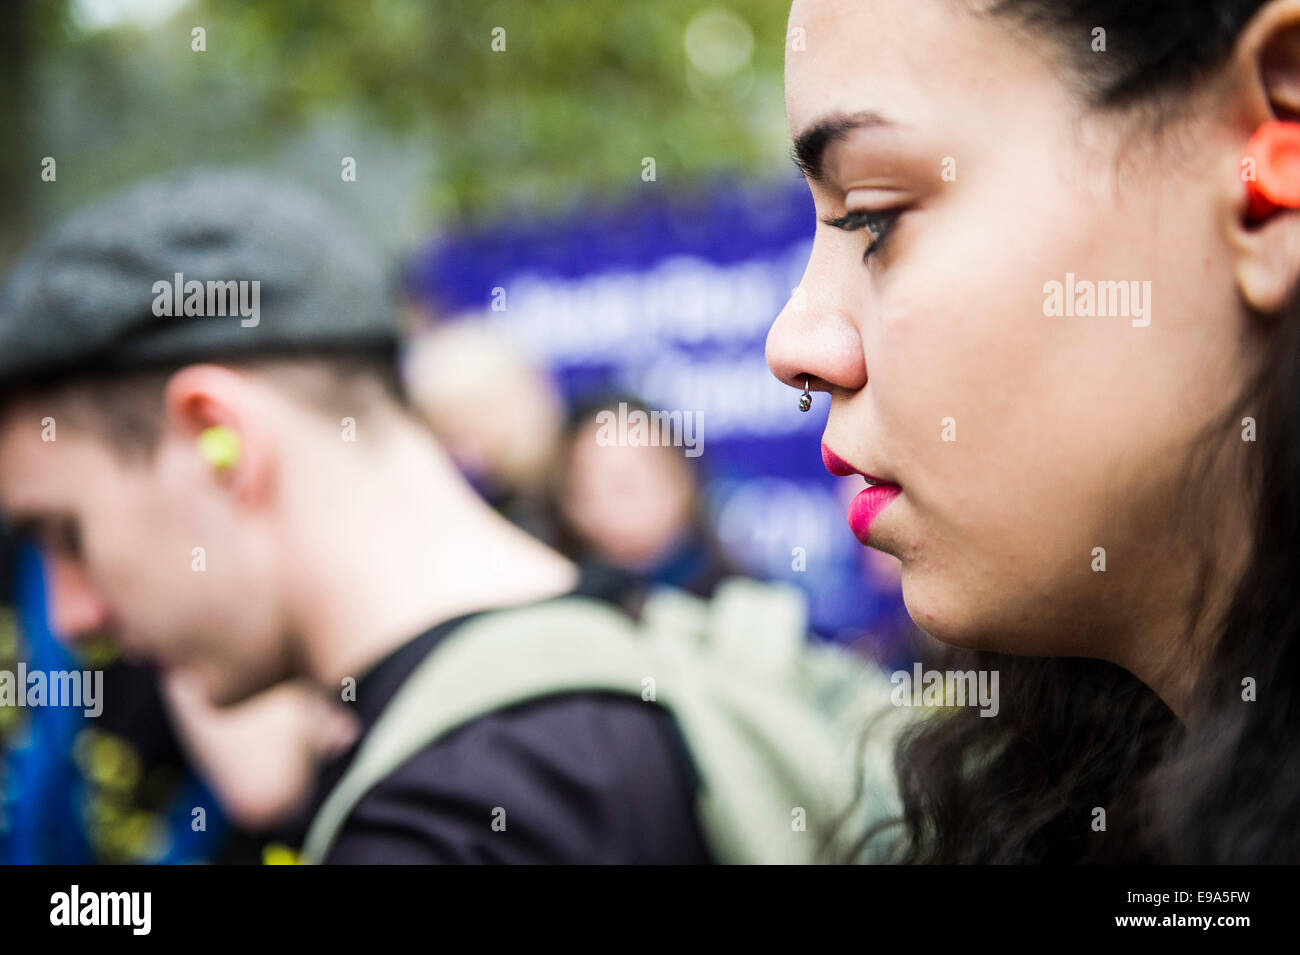 A woman with a nose piercing. - Stock Image